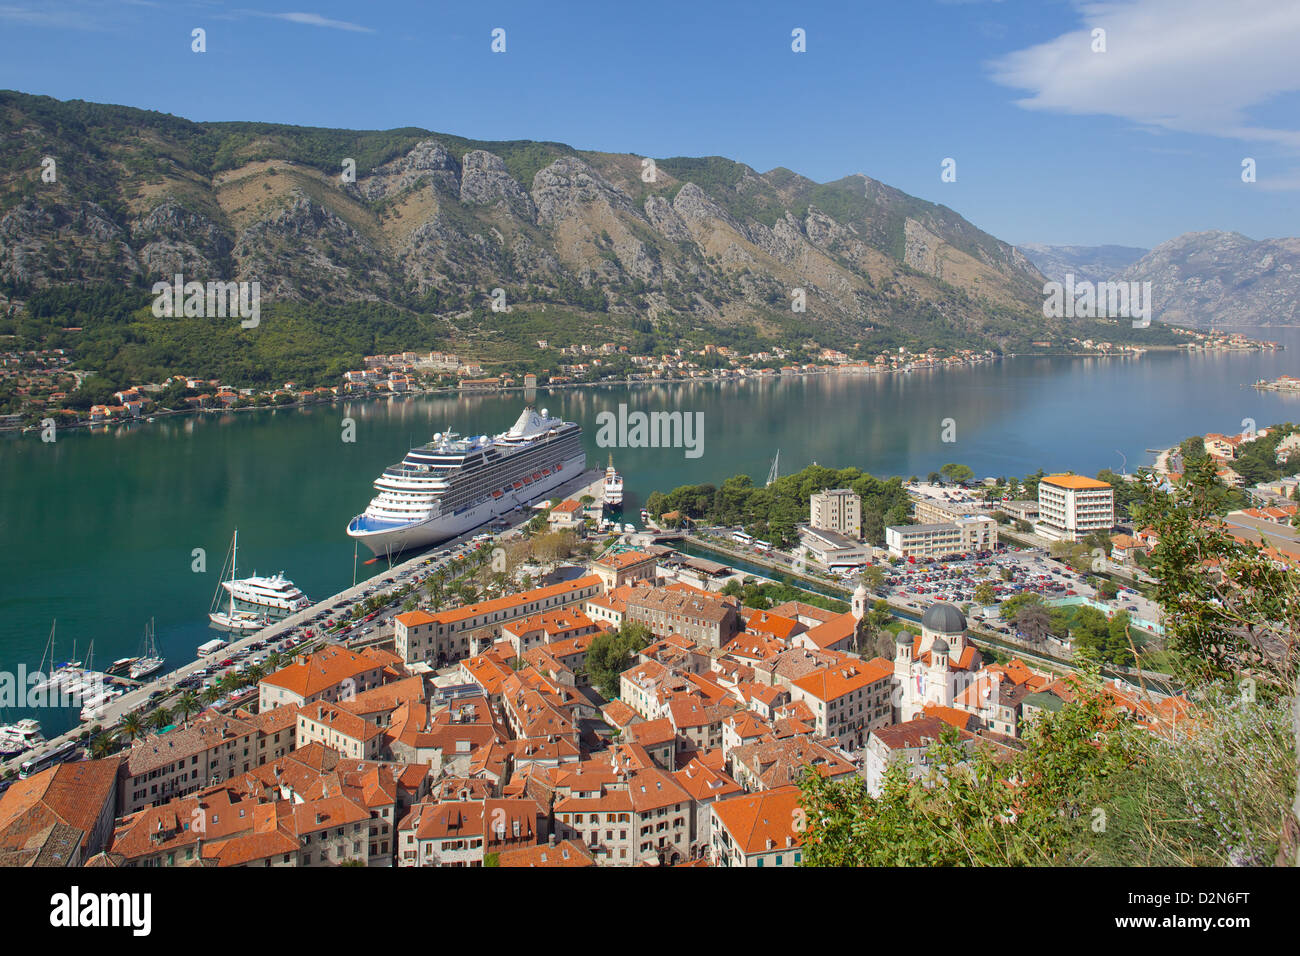 View over Old Town and cruise ship in Port, Kotor, UNESCO ...